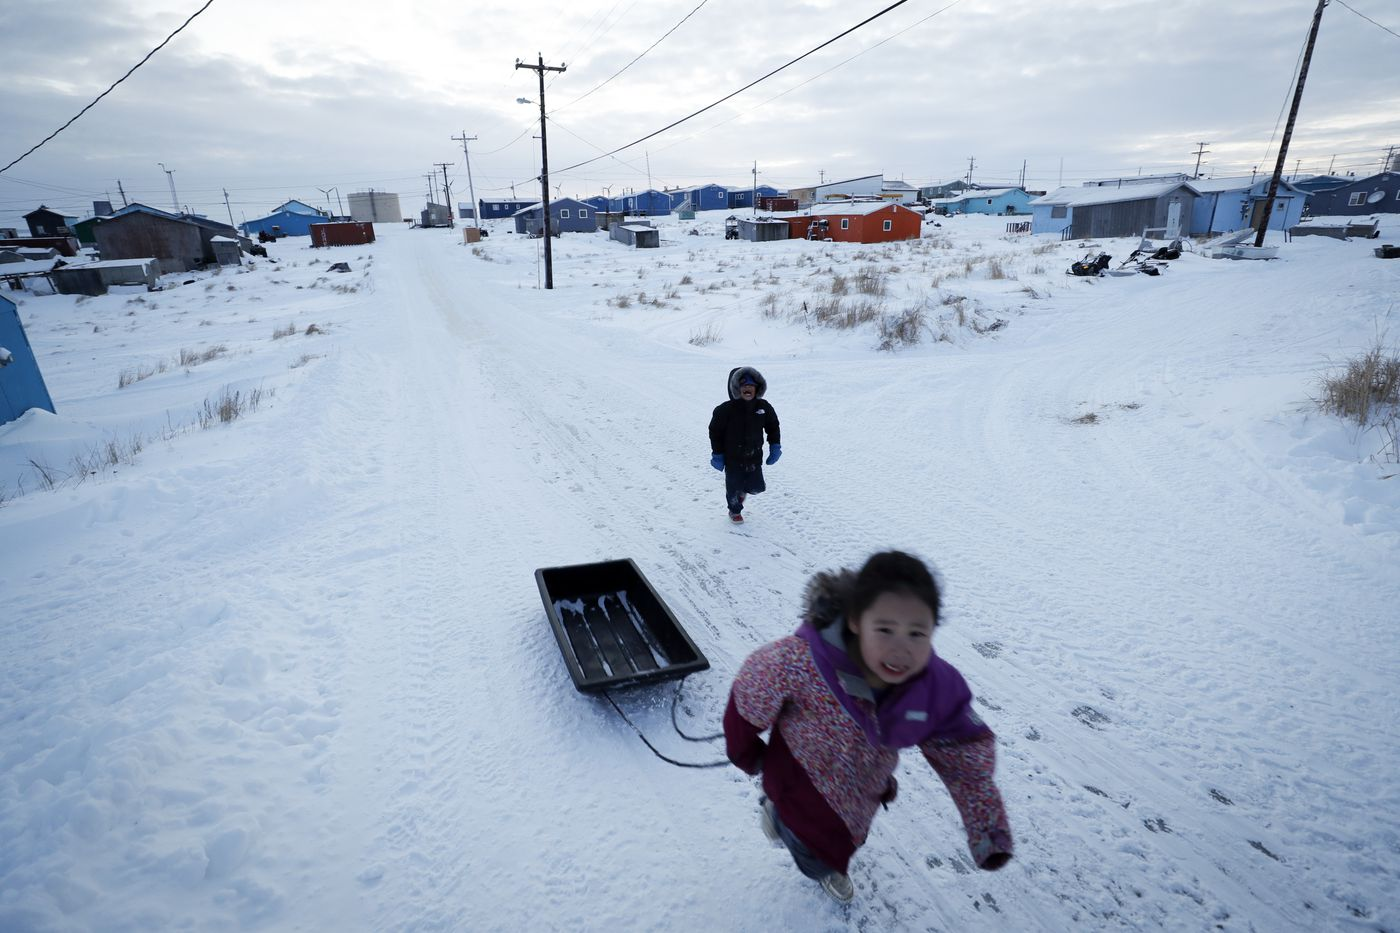 Children play in the snow Saturday, Jan. 18, 2020, in Toksook Bay, Alaska. The first Americans to be counted in the 2020 Census starting Tuesday, Jan. 21, live in this Bering Sea coastal village. The Census traditionally begins earlier in Alaska than the rest of the nation because frozen ground allows easier access for Census workers, and rural Alaska will scatter with the spring thaw to traditional hunting and fishing grounds. (AP Photo/Gregory Bull)